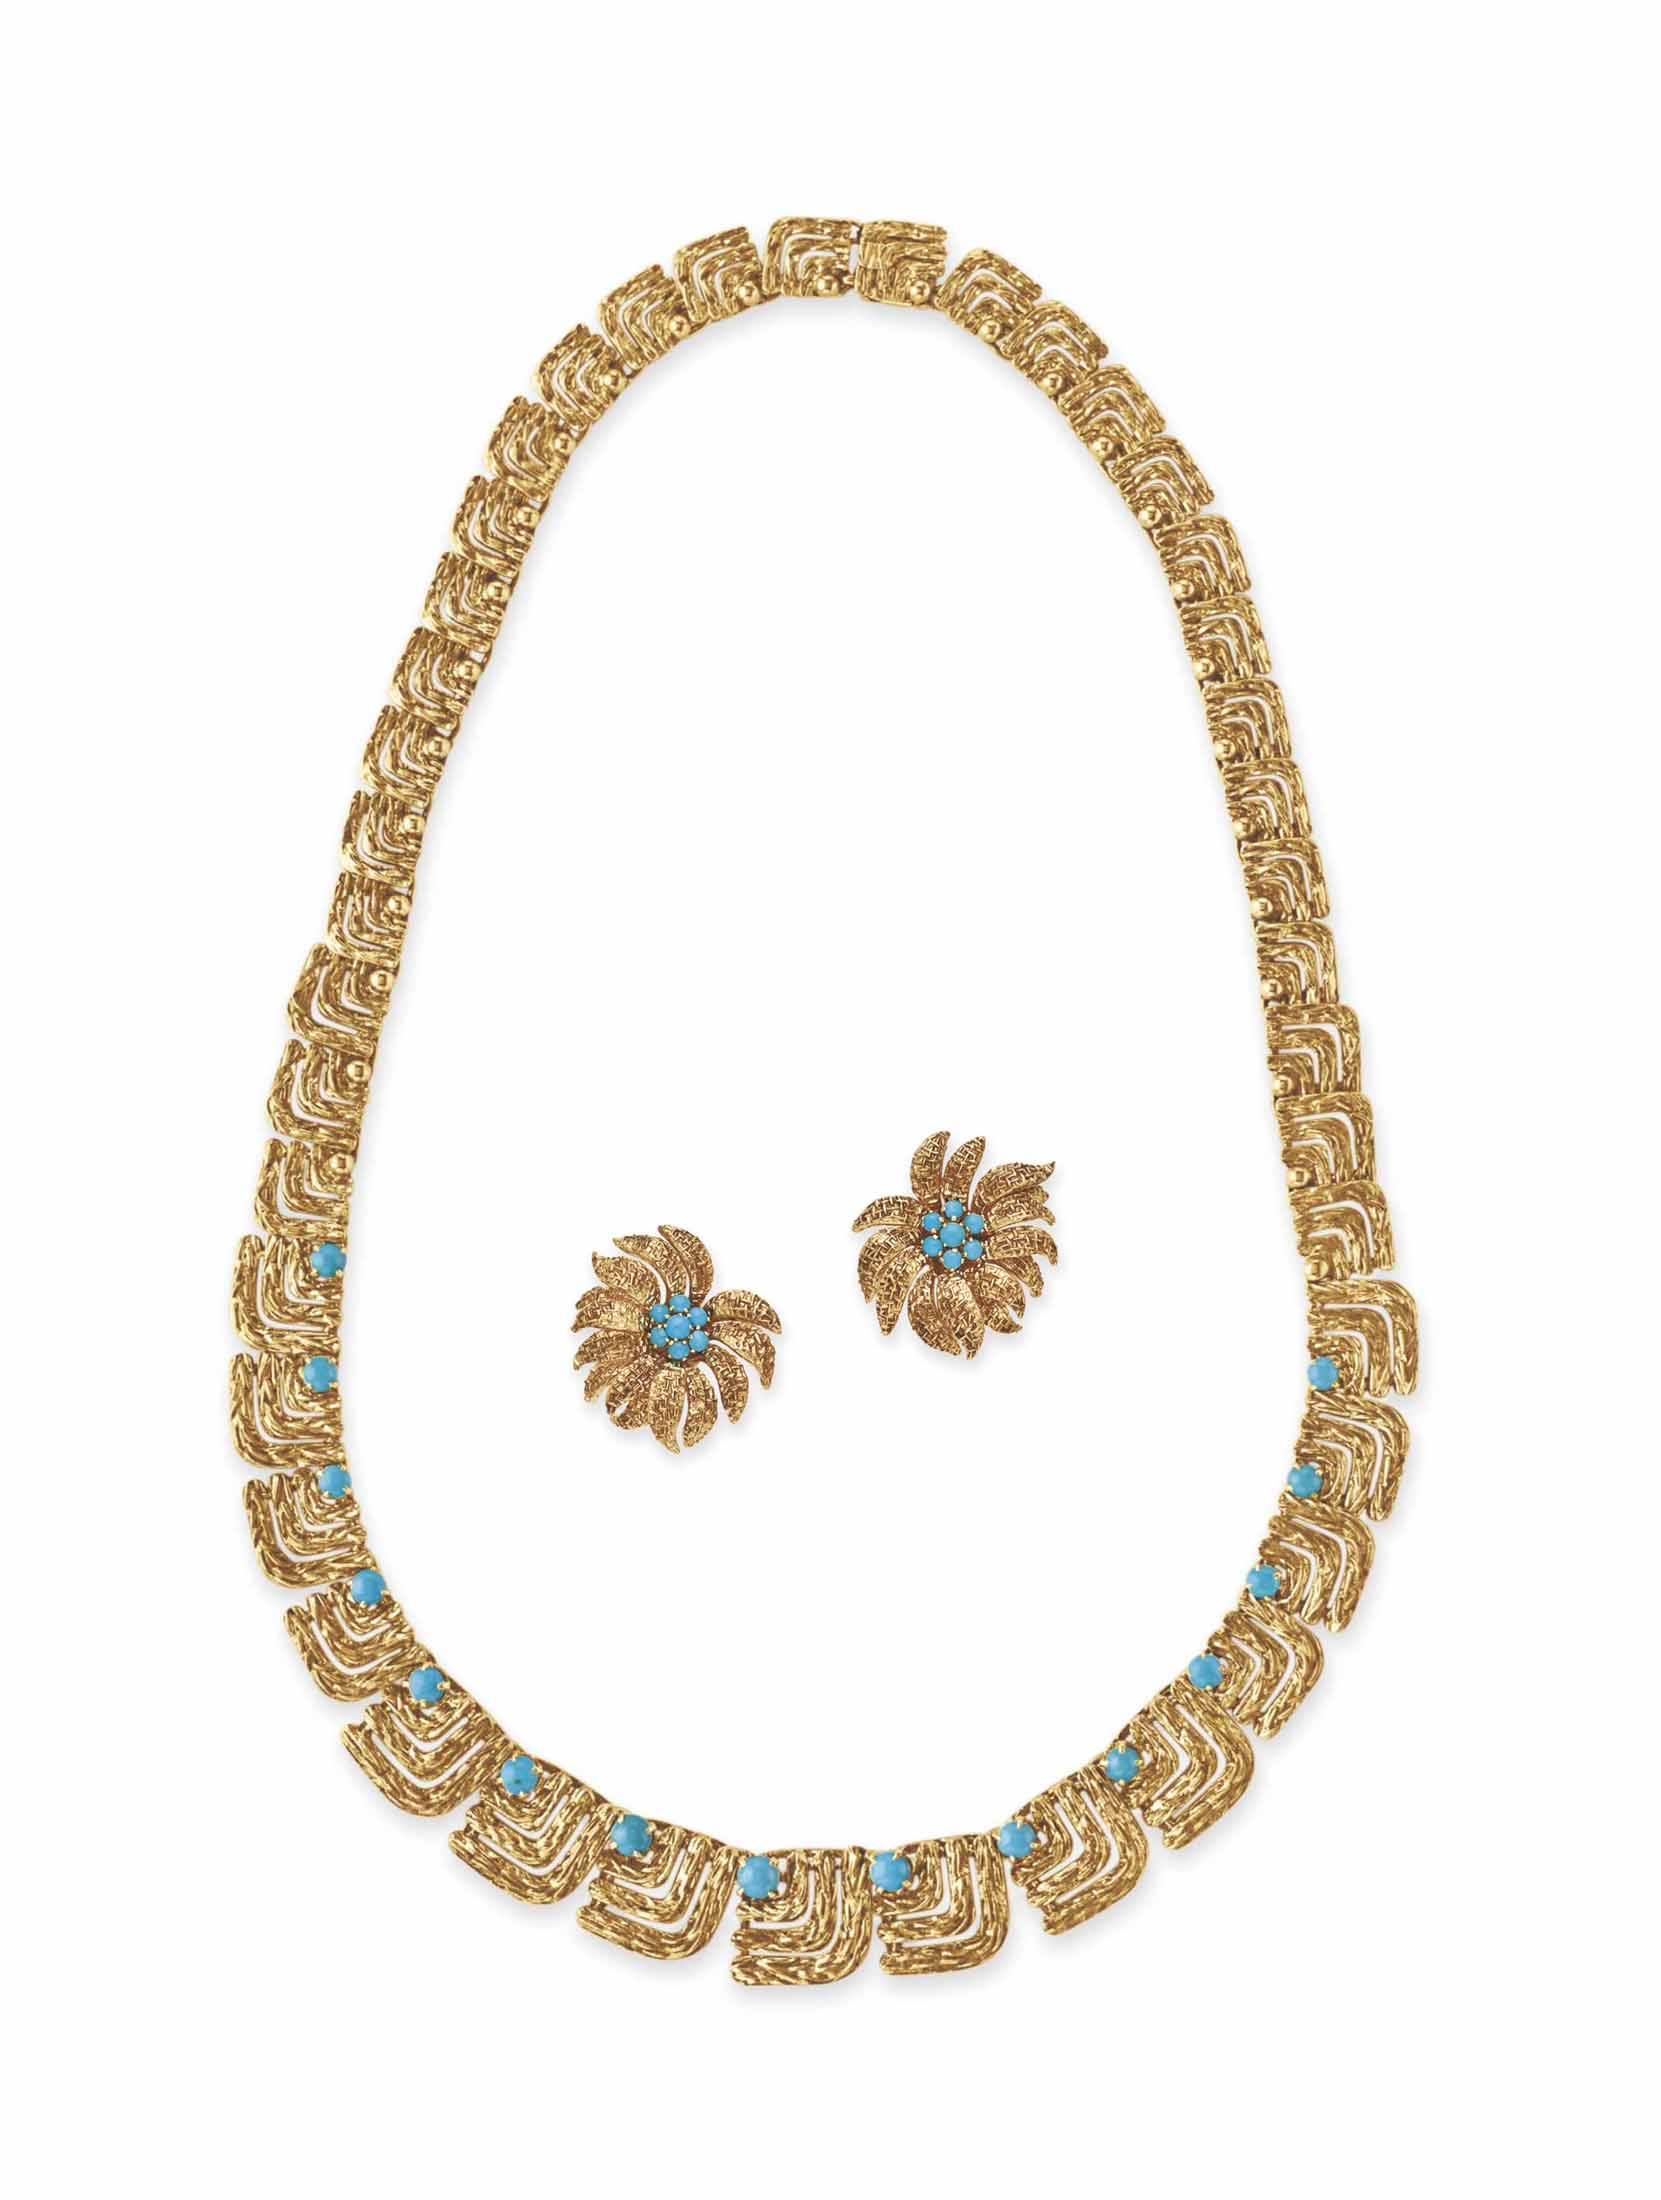 A SET OF TURQUOISE AND GOLD JE